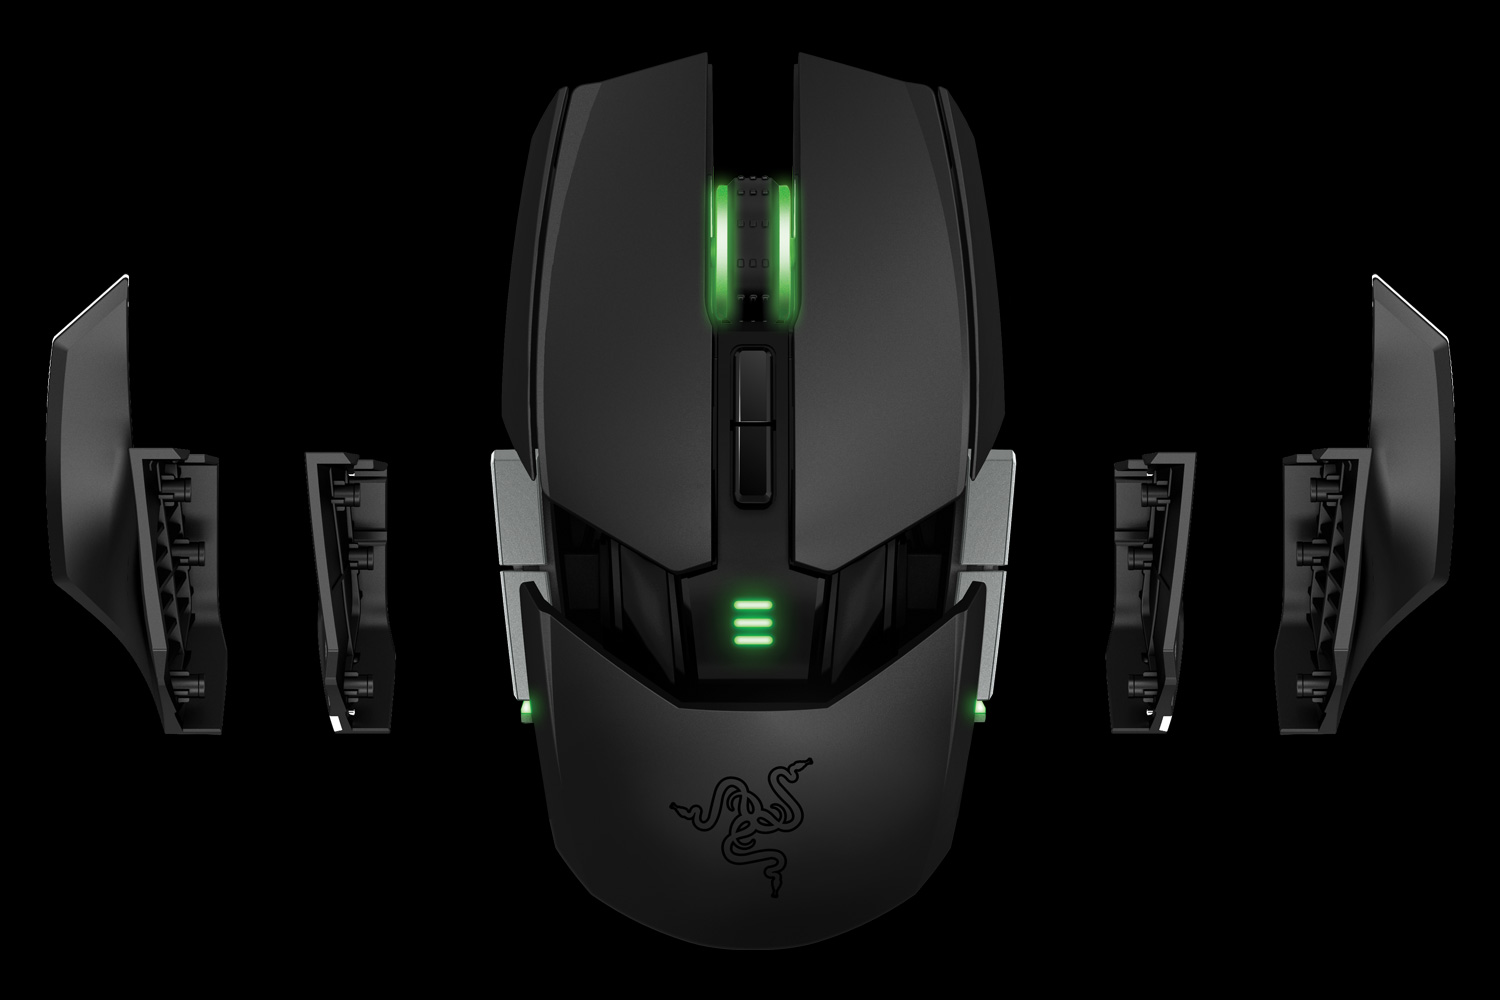 073c723e54b3ac123ea4b0386b2e34b7 razer ouroboros gallery 06 razer ouroboros gaming mouse ambidextrous mouse for gaming  at n-0.co